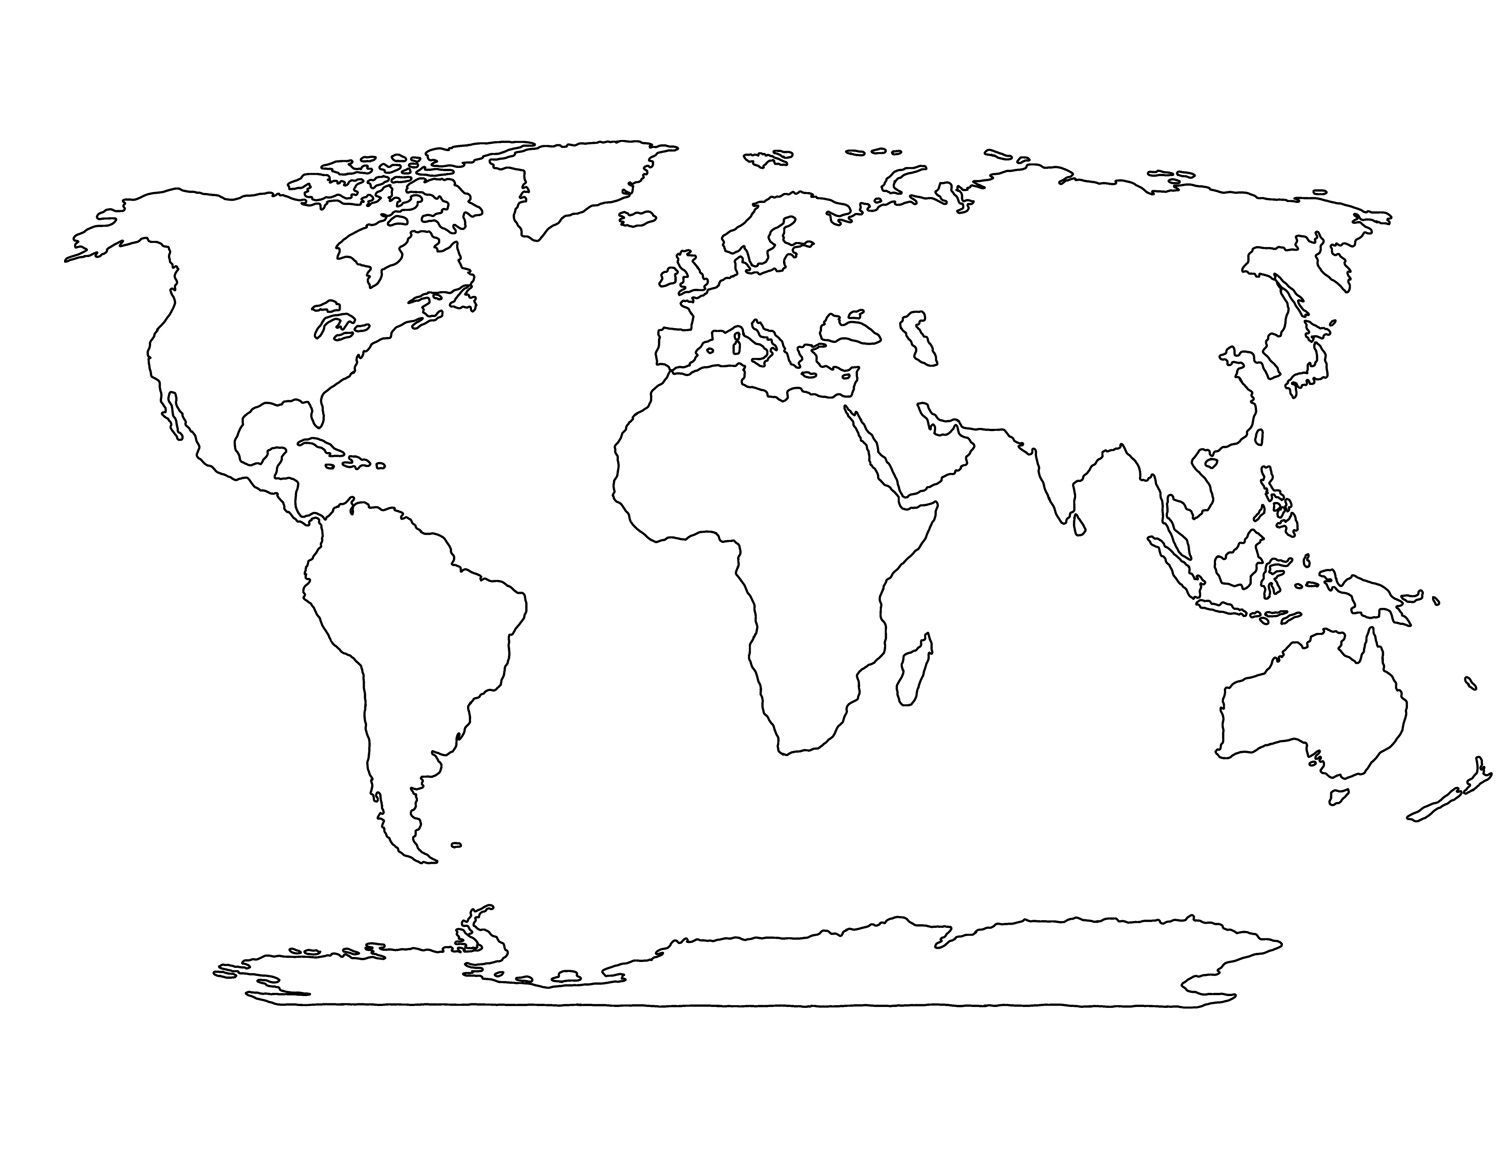 Blank Physical World Map Printable Blank World Map Printa...